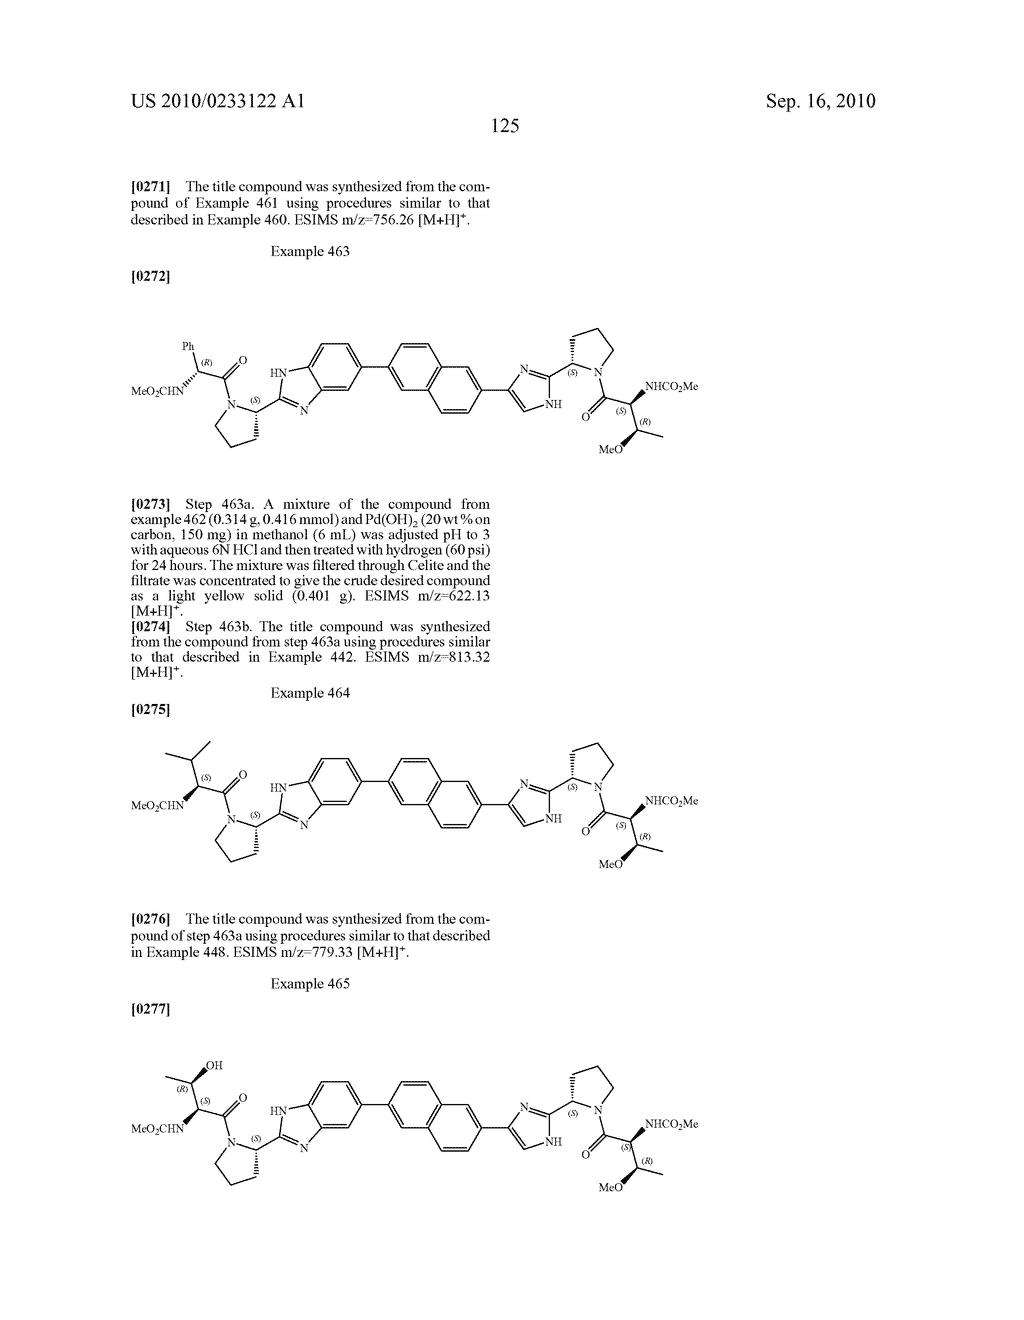 NOVEL BENZIMIDAZOLE DERIVATIVES - diagram, schematic, and image 126